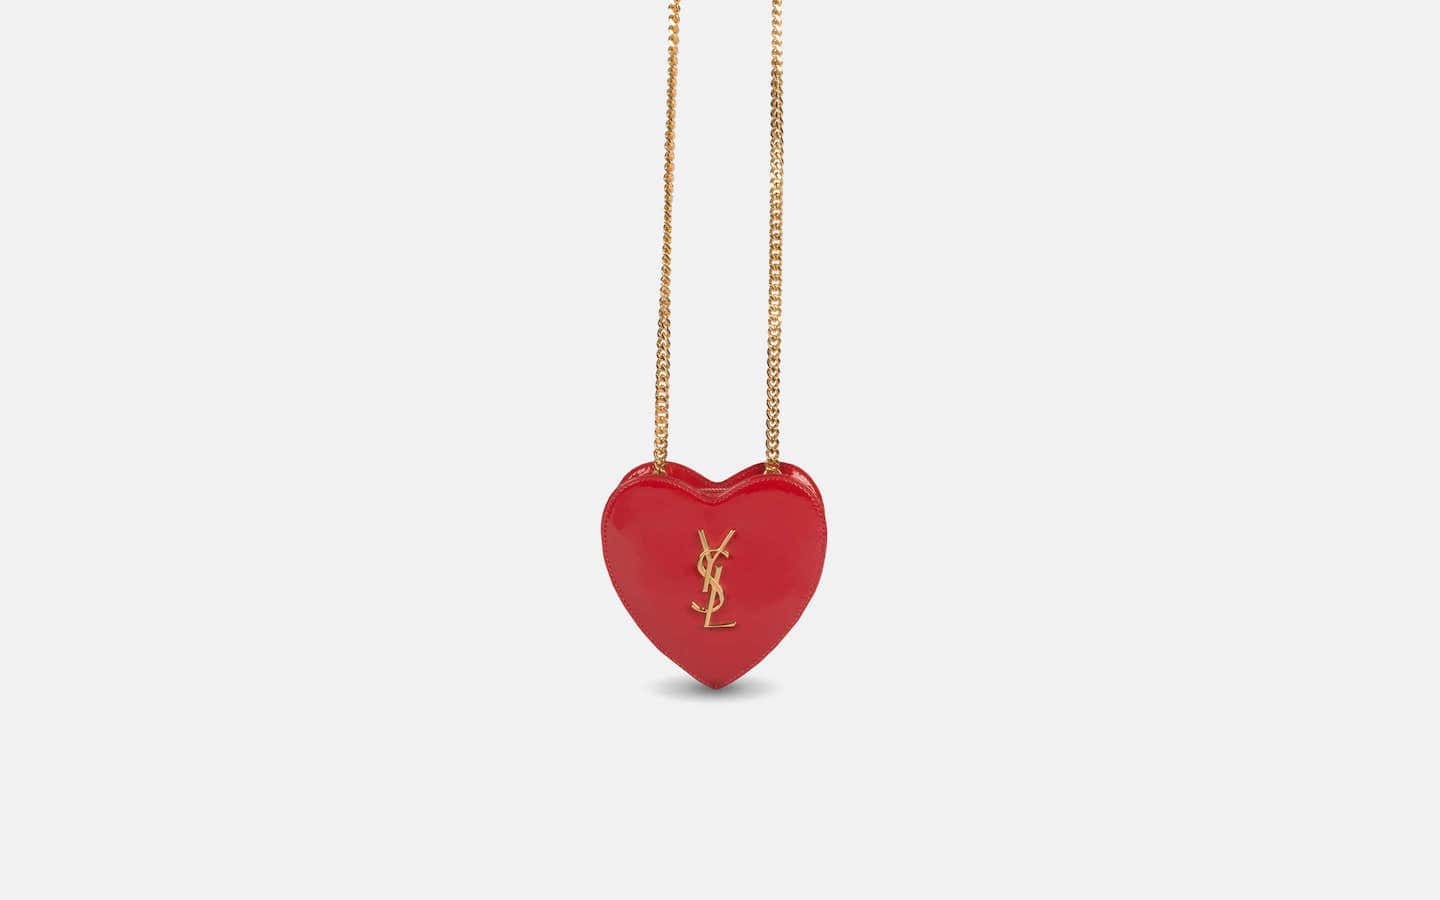 ysl-red-new-front-min-min